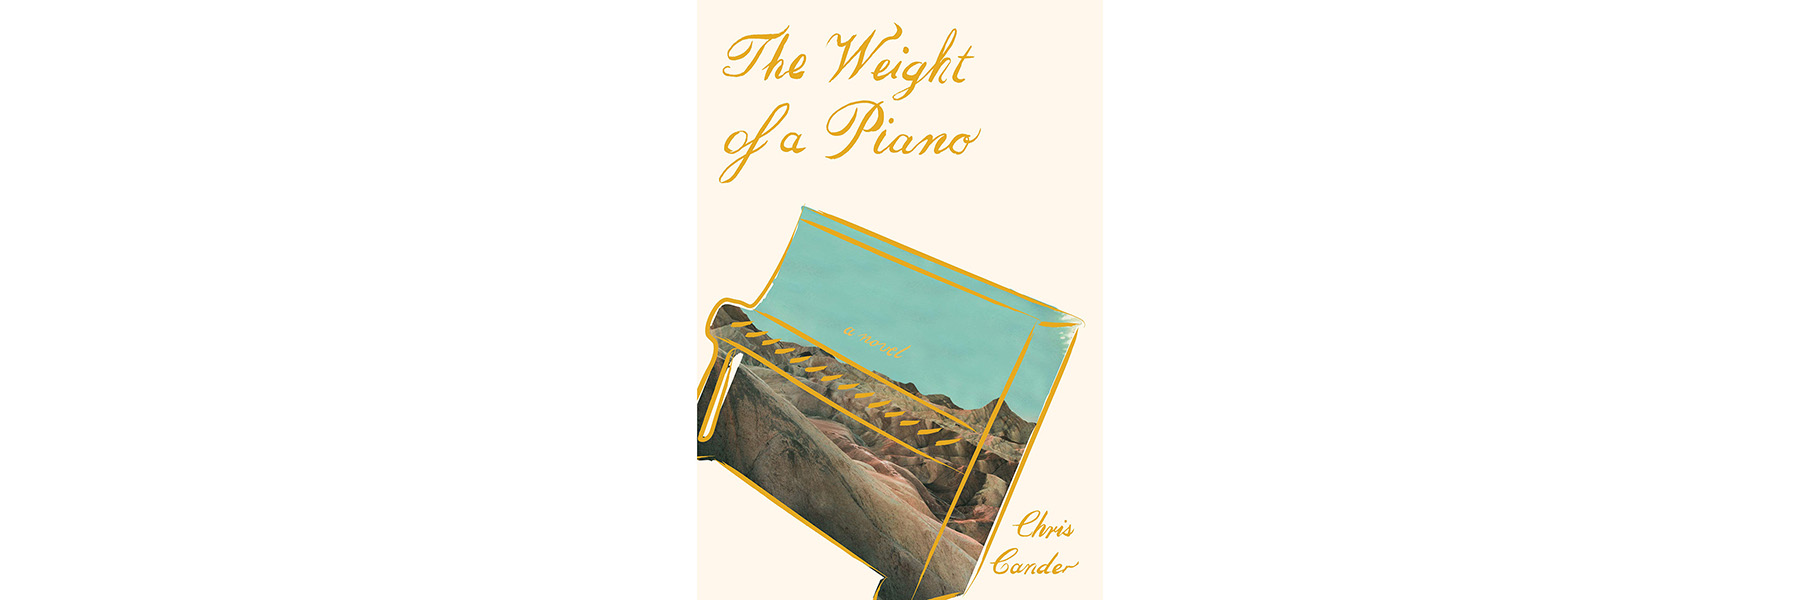 Cover of The Weight of a Piano, by Chris Cander